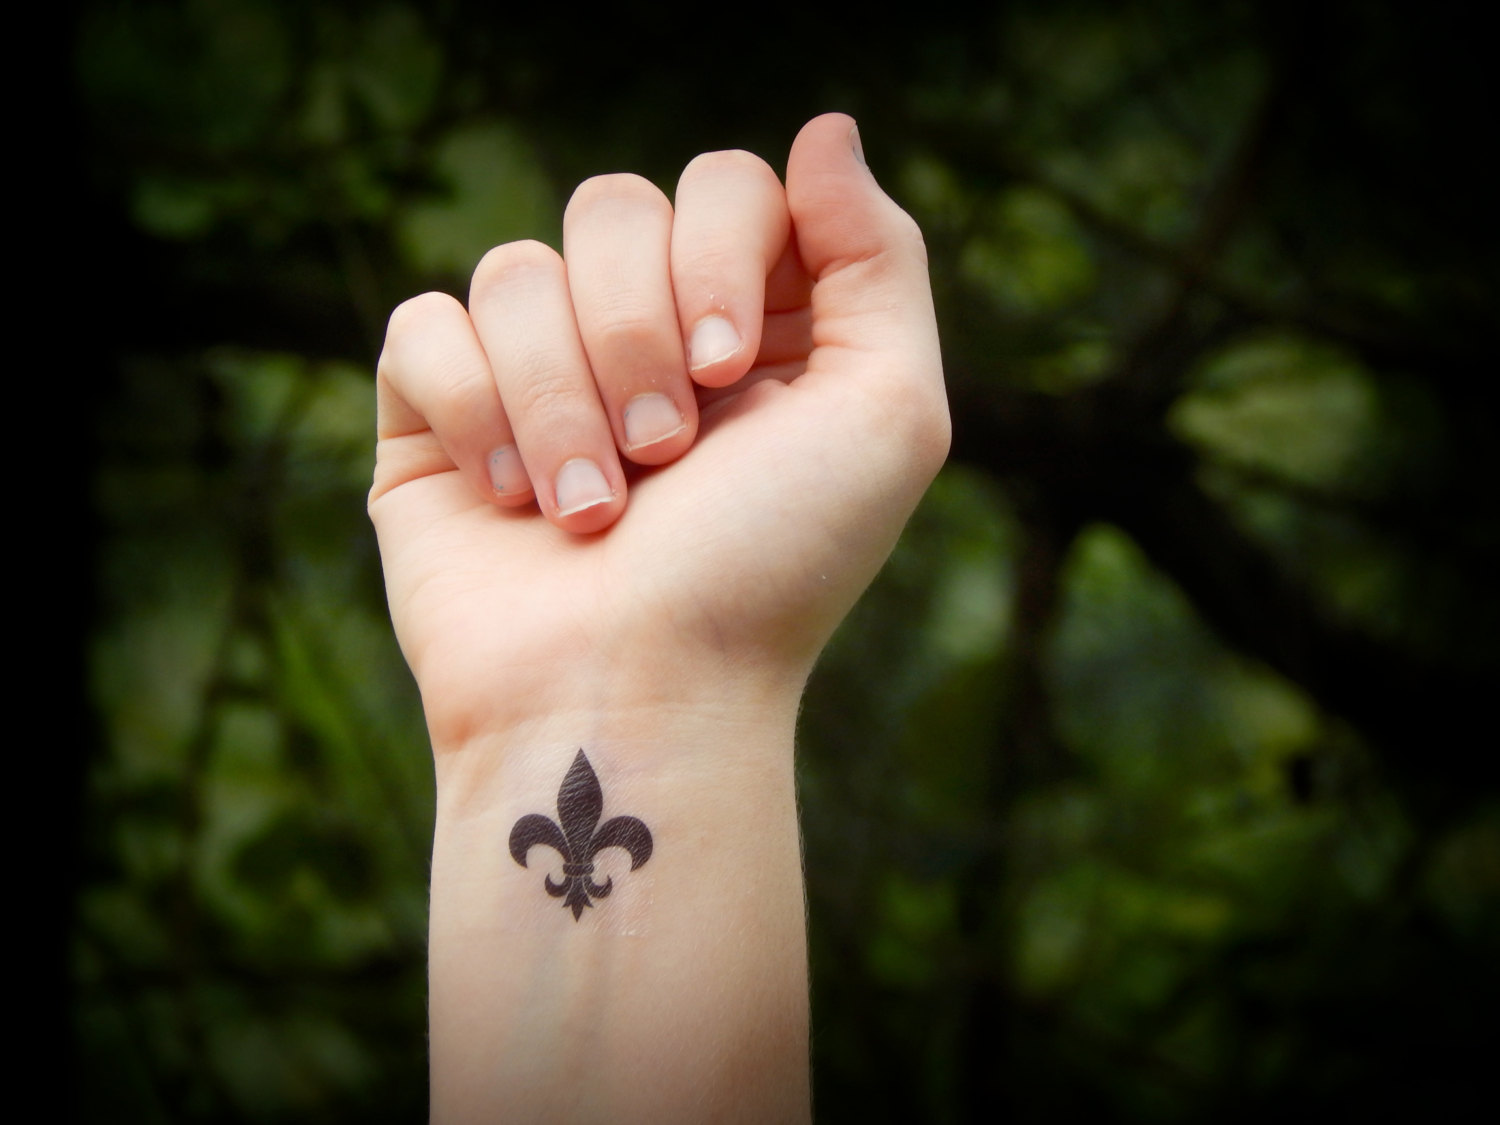 43 fleur de lis tattoos with symbolic meanings and representations 43 fleur de lis tattoos with symbolic meanings and representations tattoos win izmirmasajfo